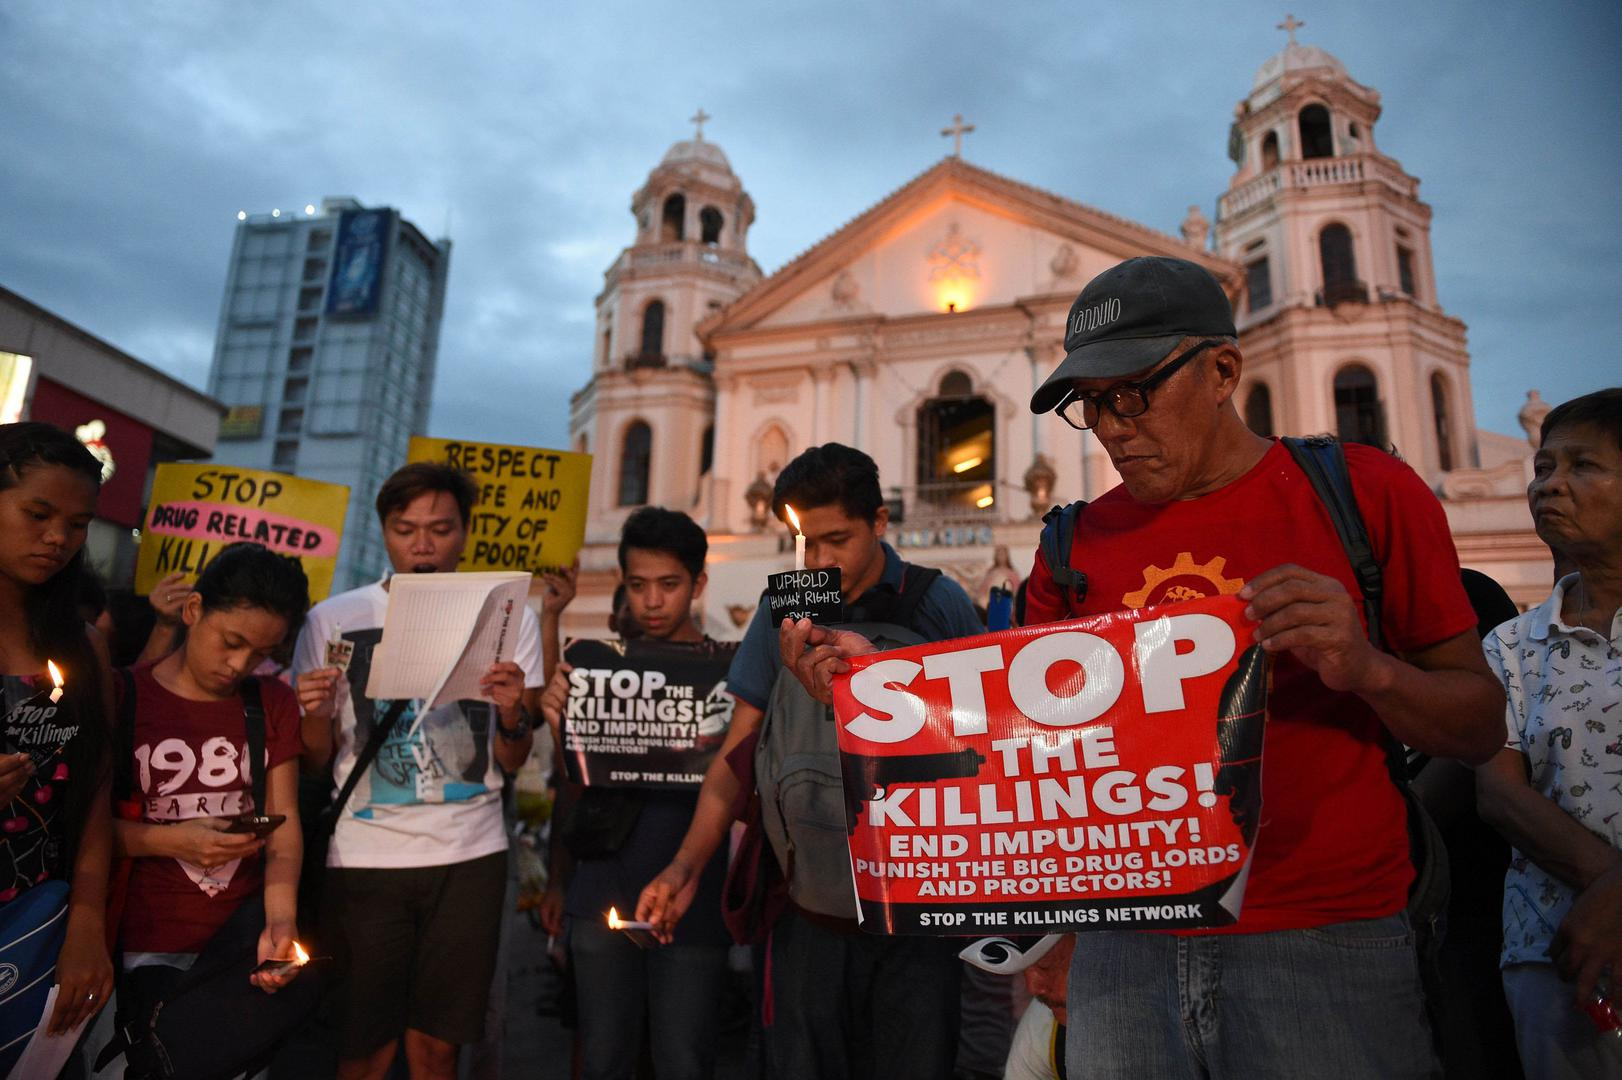 Activists hold a candle light vigil for victims of the extra judicial killings in the drug war of the government in front of a church in Manila on September 16, 2016